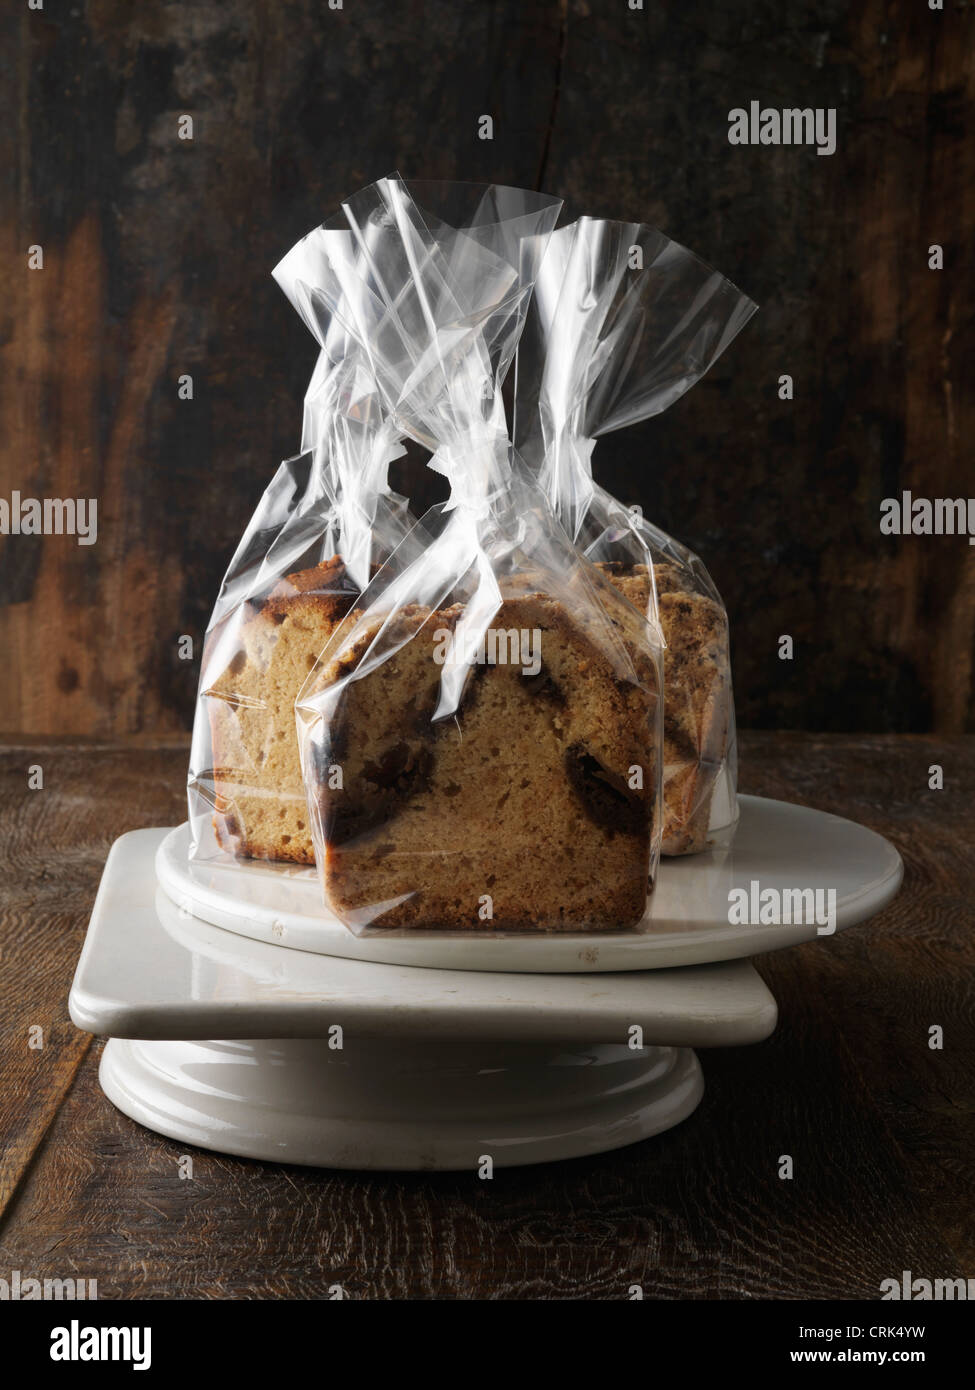 Breads in cellophane gift bags - Stock Image